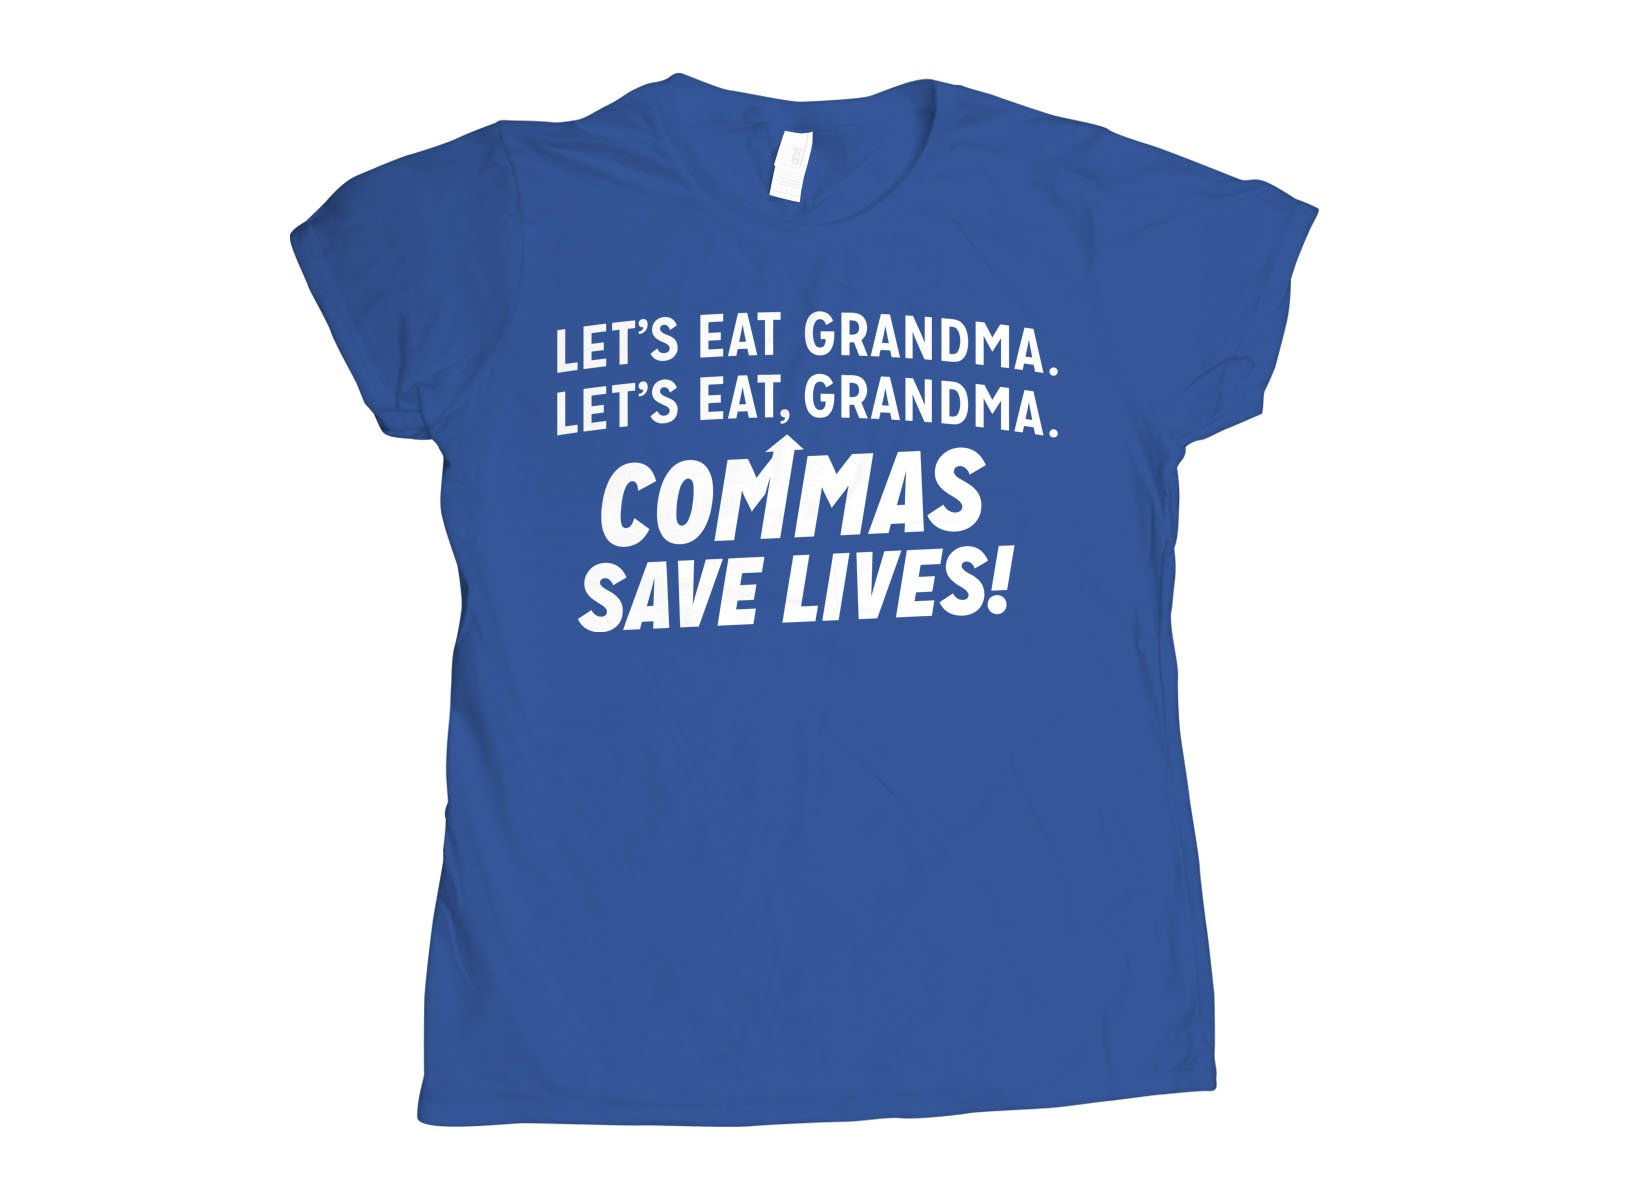 Commas Save Lives! on Womens T-Shirt